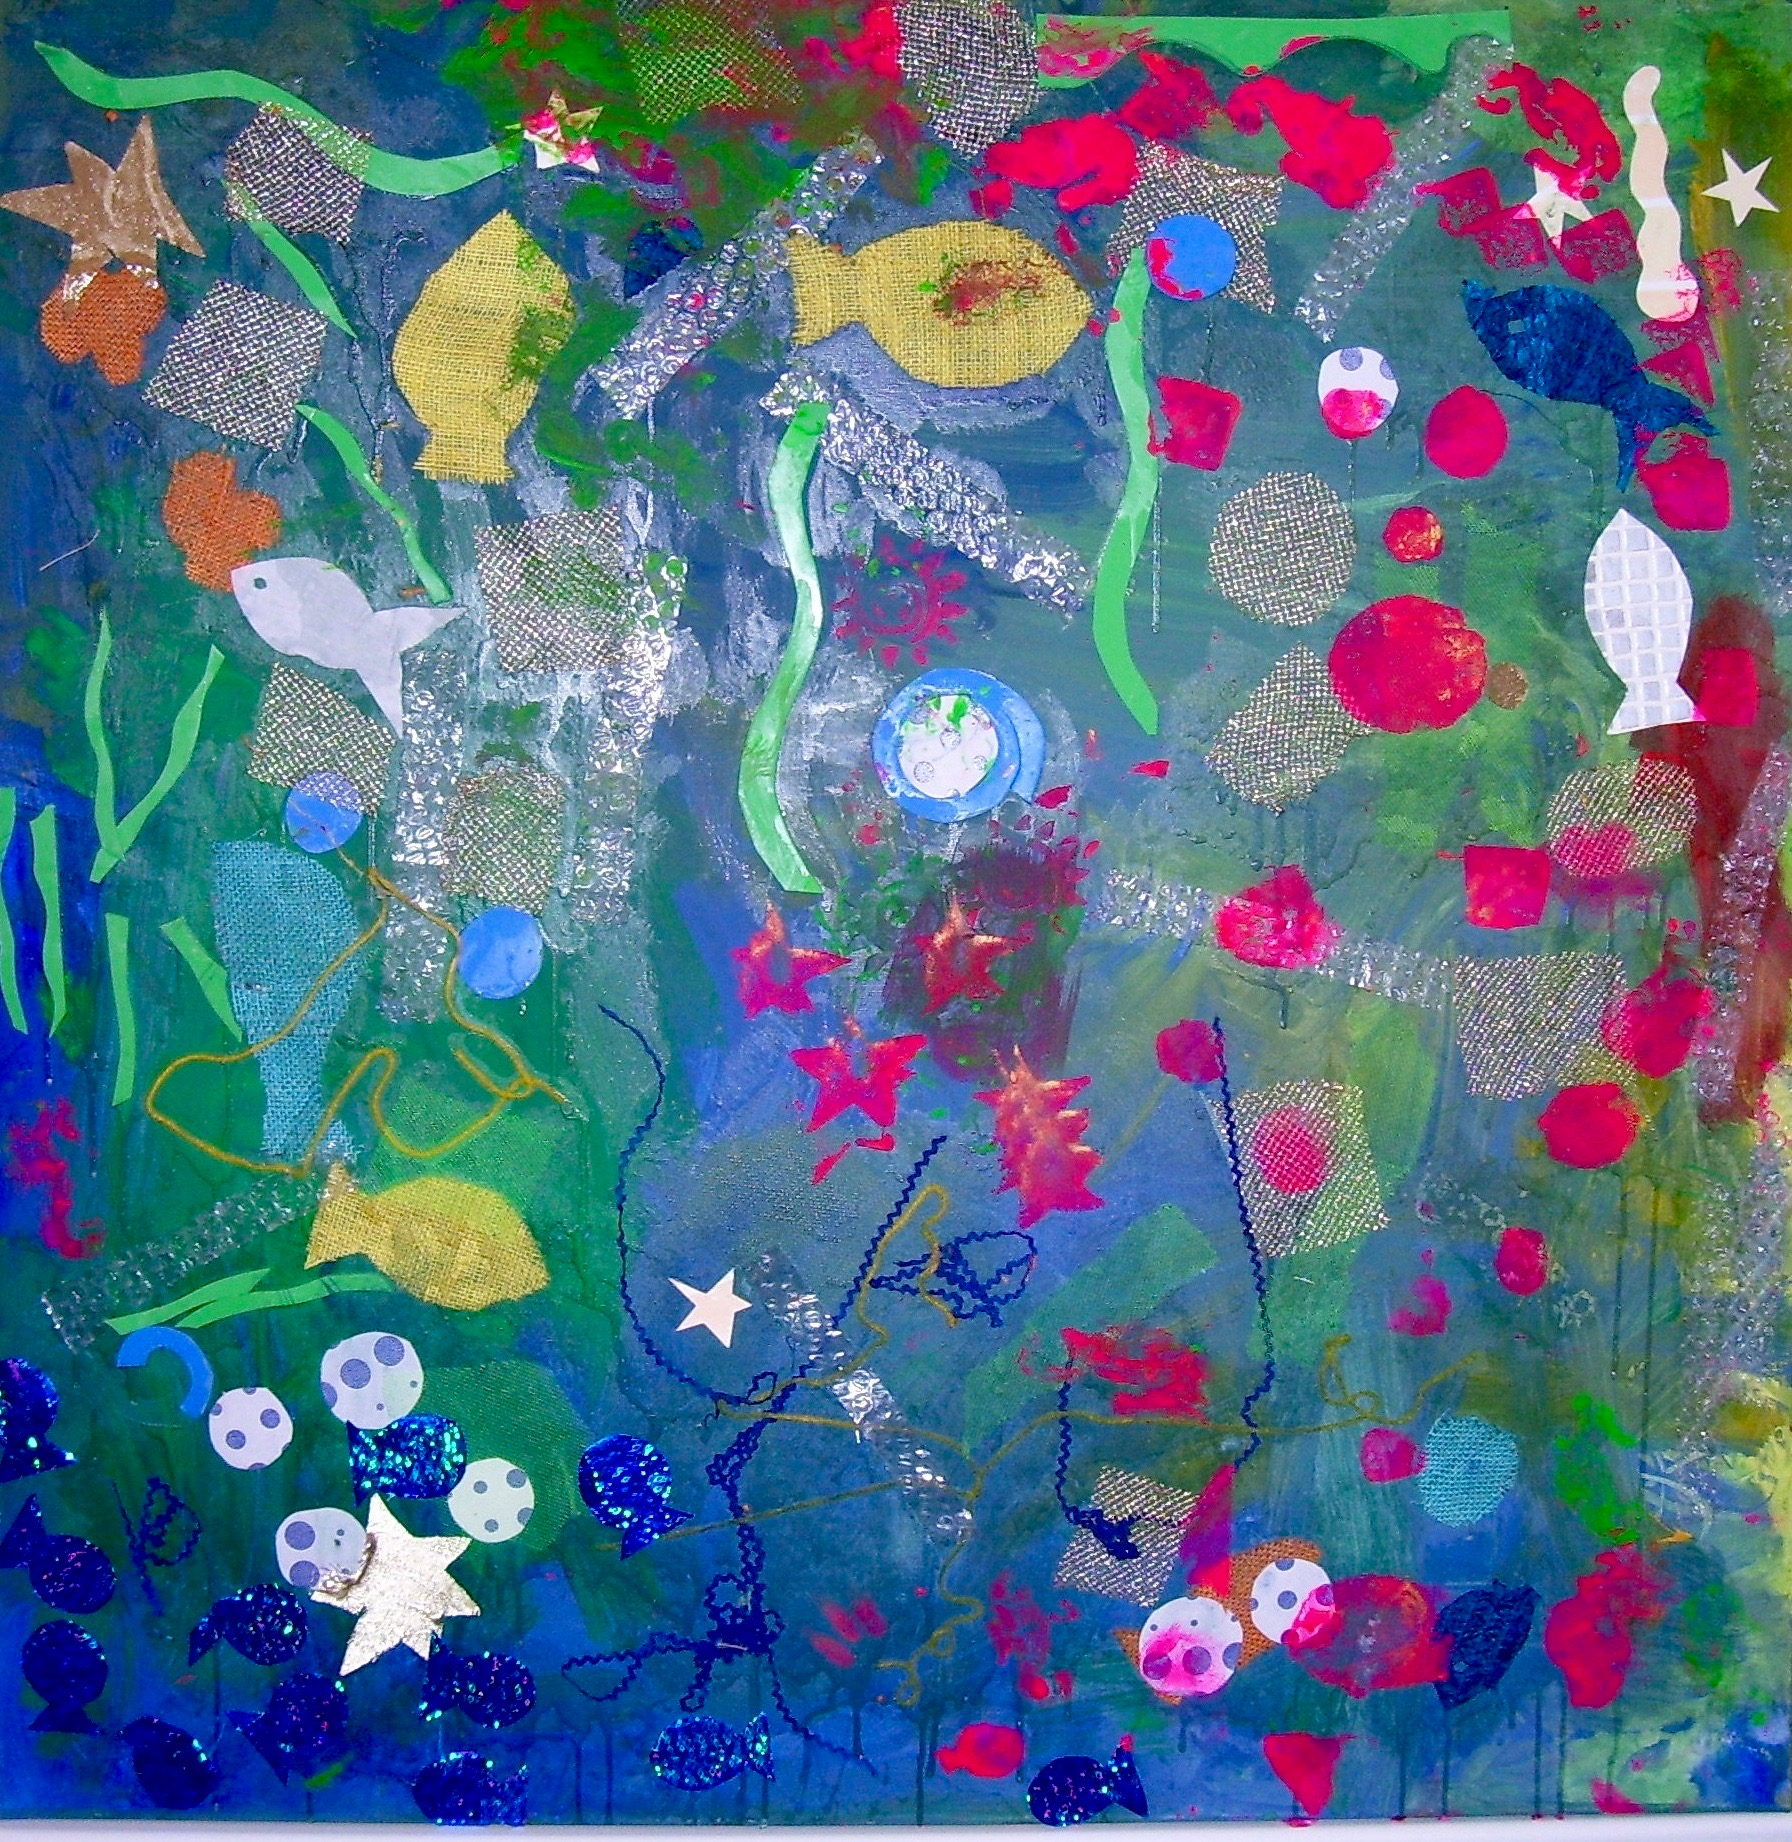 Collaged Canvas - Young pupils with complex needs enjoyed the tactile nature of the art materials used to create this 'Under the Sea' themed mixed media collage. They also explored mark making in different ways such as painting wet fabric and squeezing paint mixed with salt from bottles and watching it move and mix together.